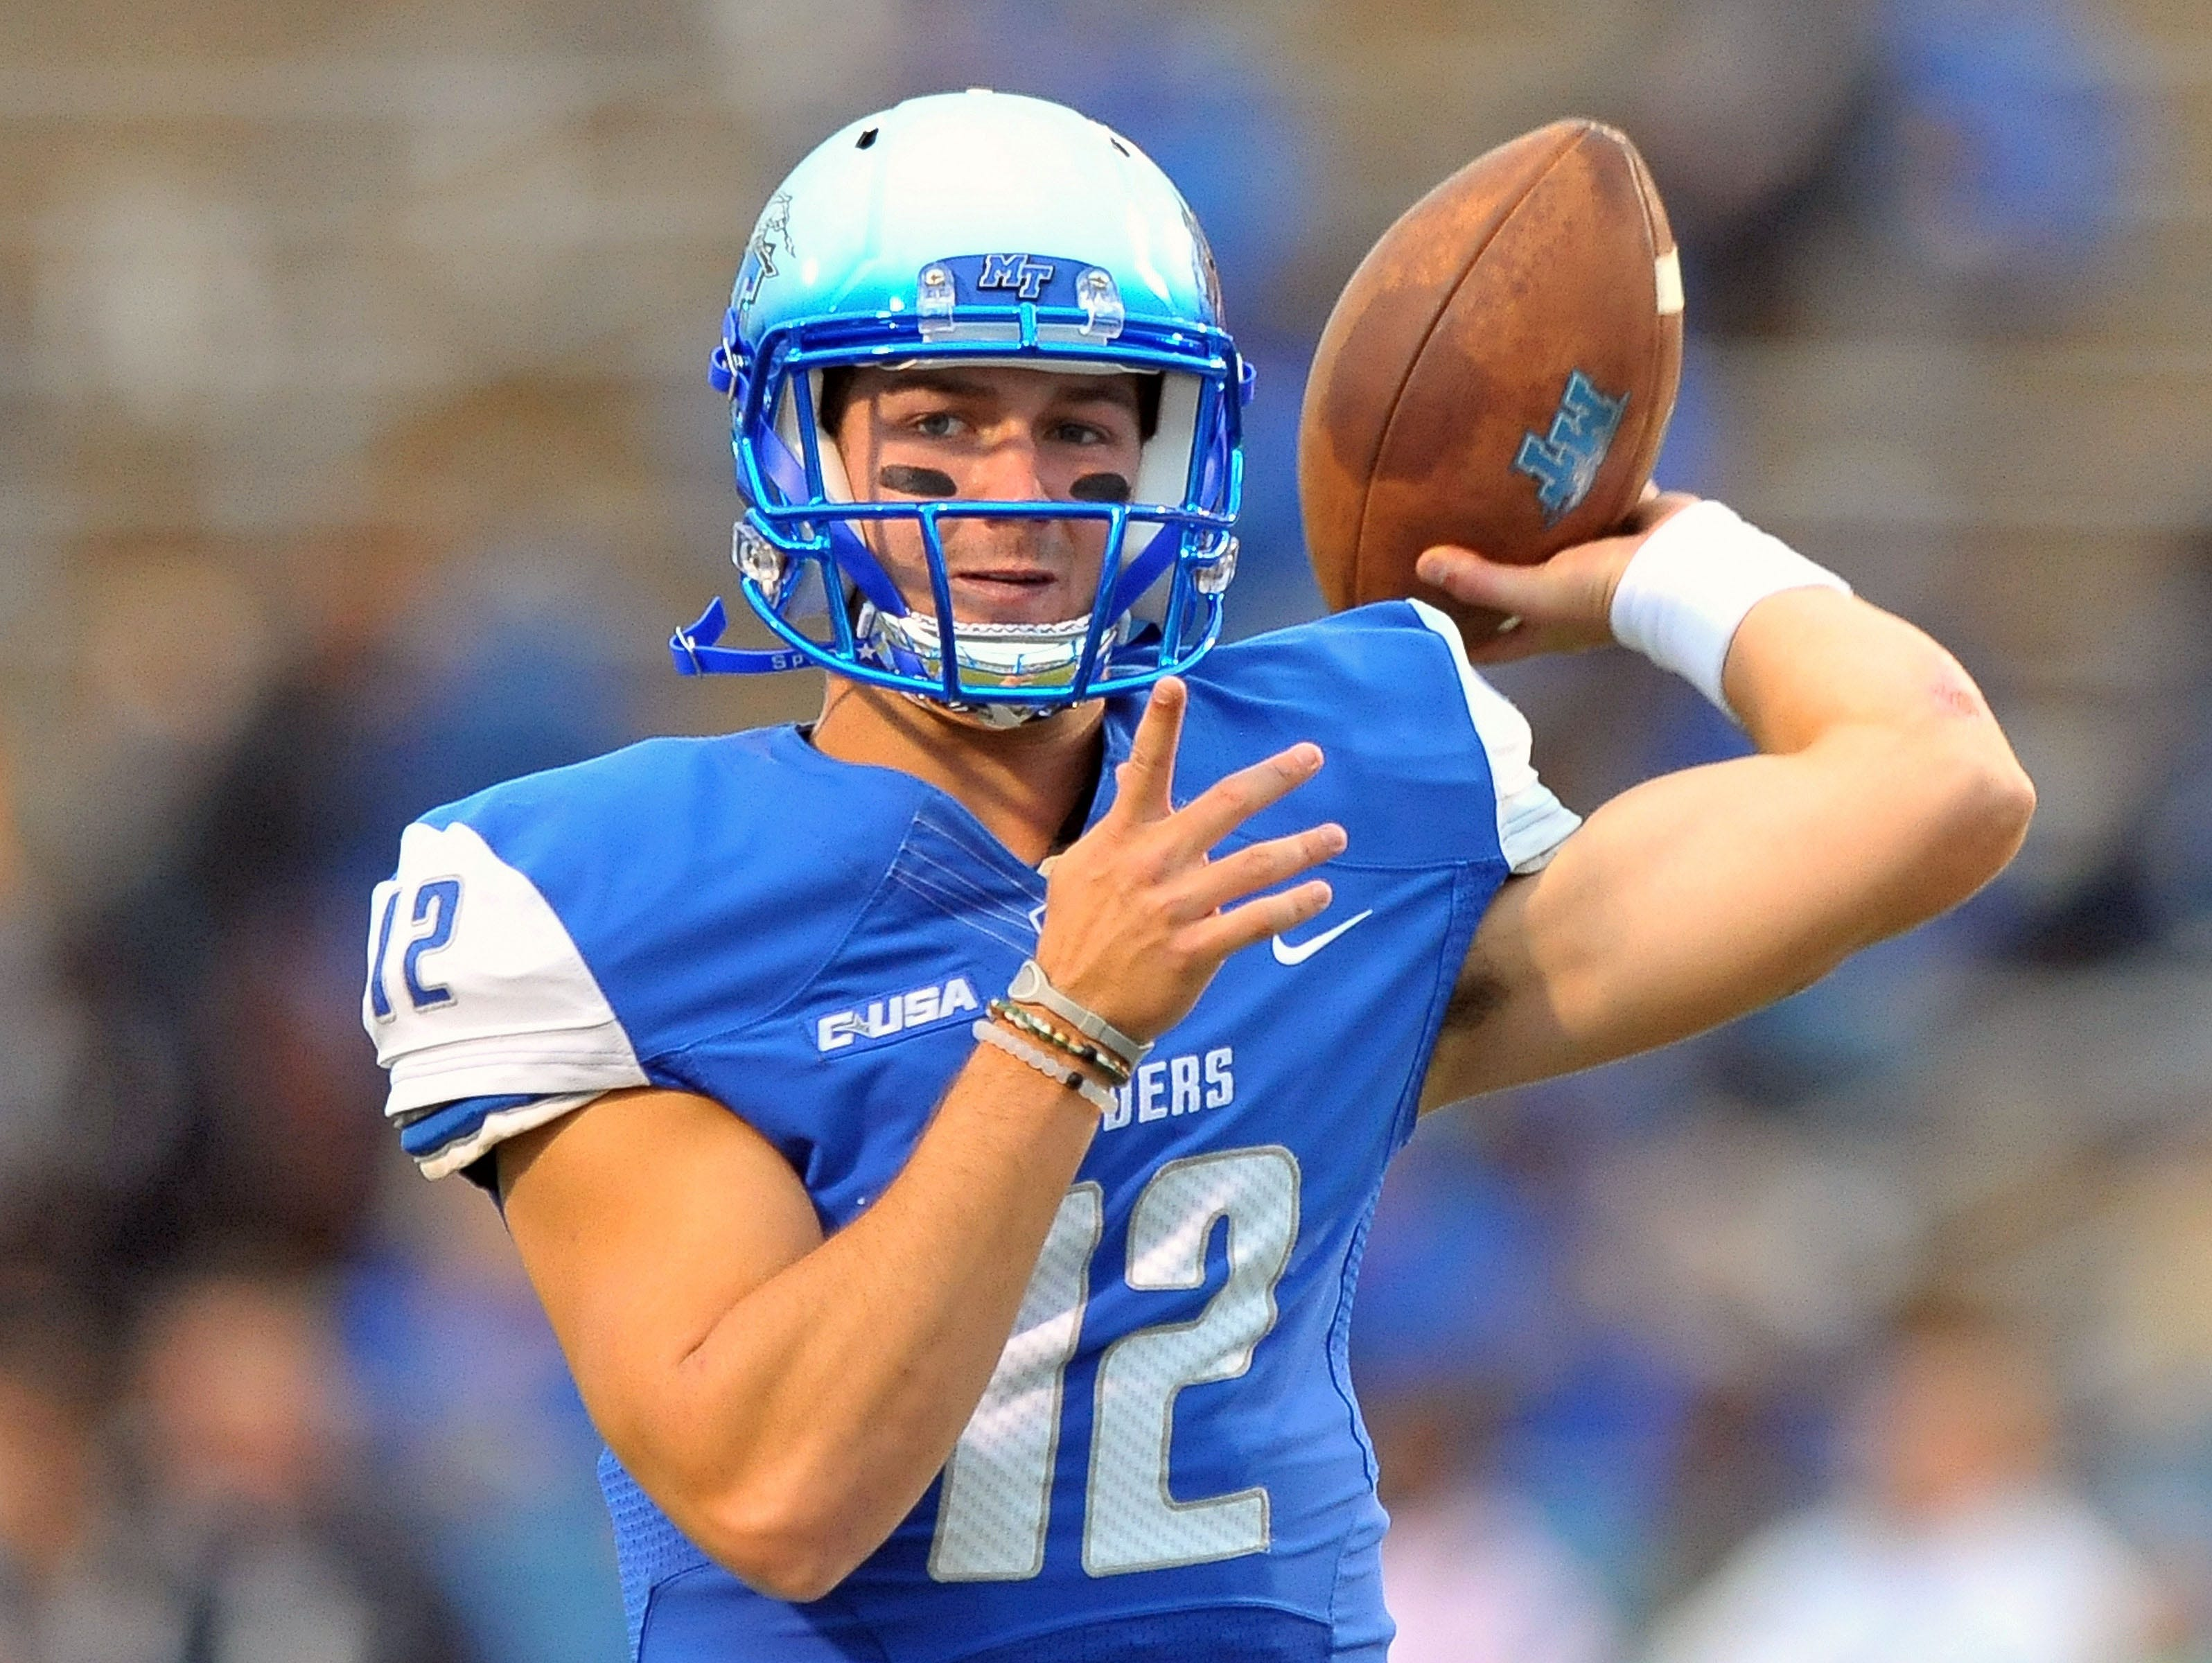 In just one season, MTSU quarterback Brent Stockstill has become one of Conference USA's top quarterbacks. In just one season, MTSU quarterback Brent Stockstill has become one of Conference USA's top quarterbacks.